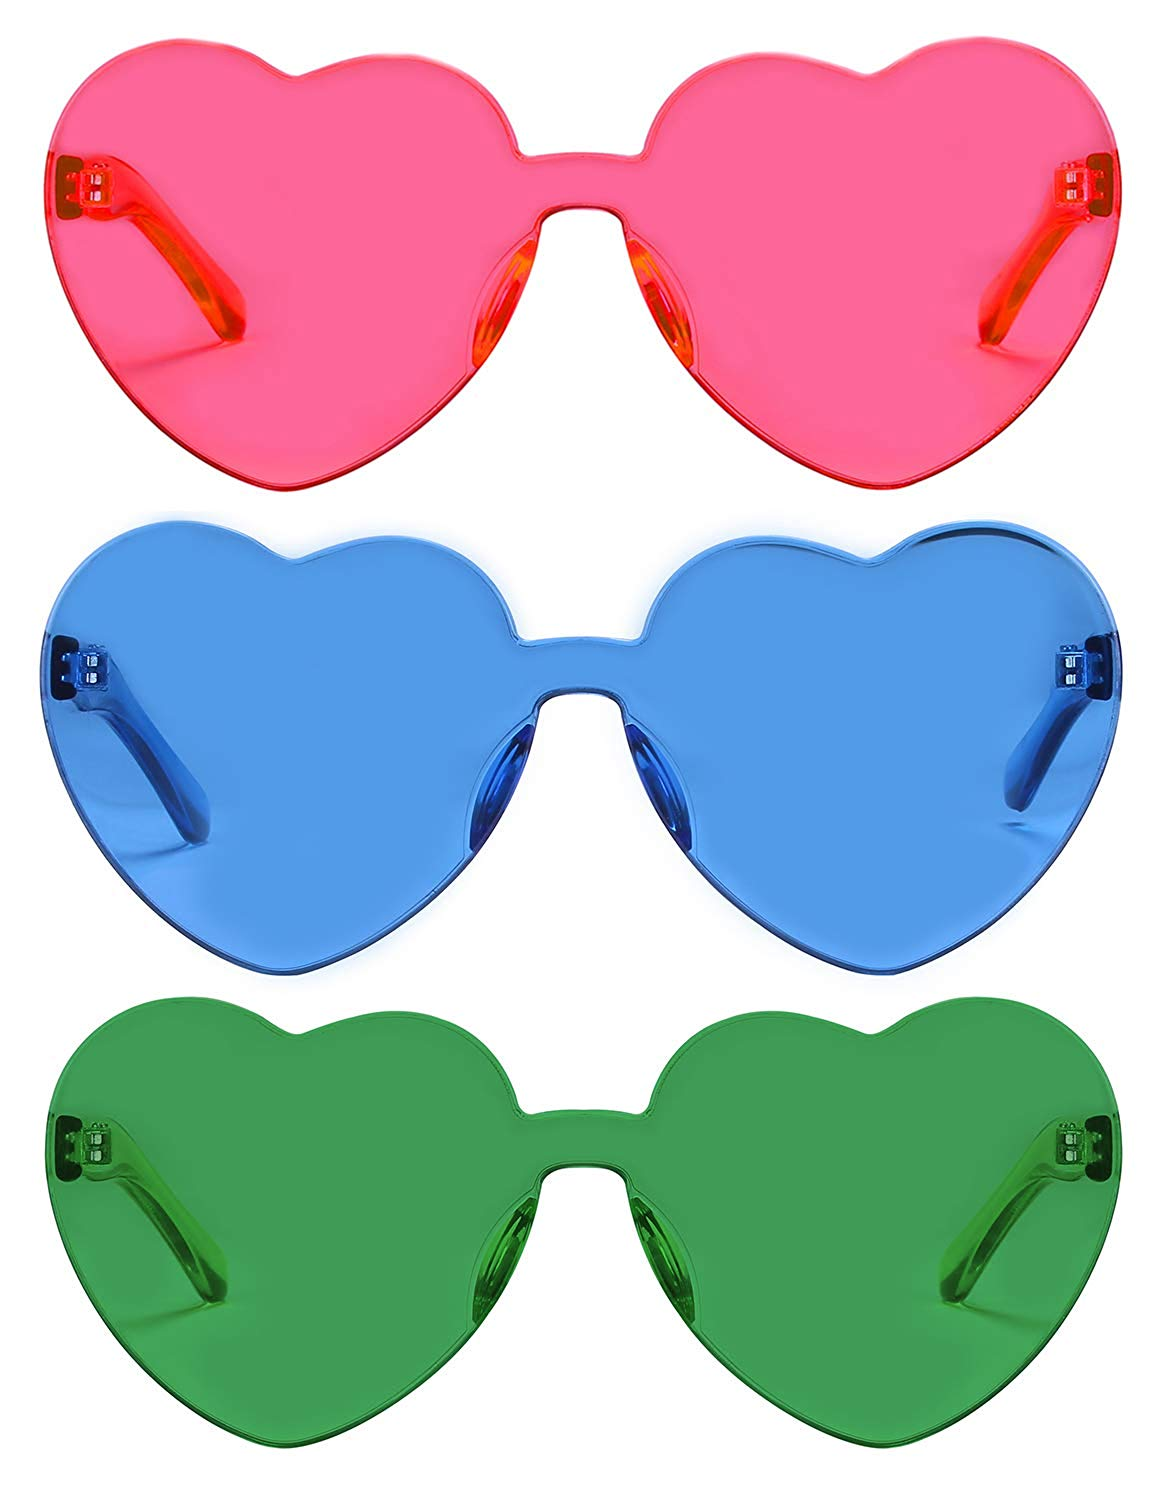 RTBOFY  — One Piece Heart Shaped Rimless Sunglasses —  $16.99